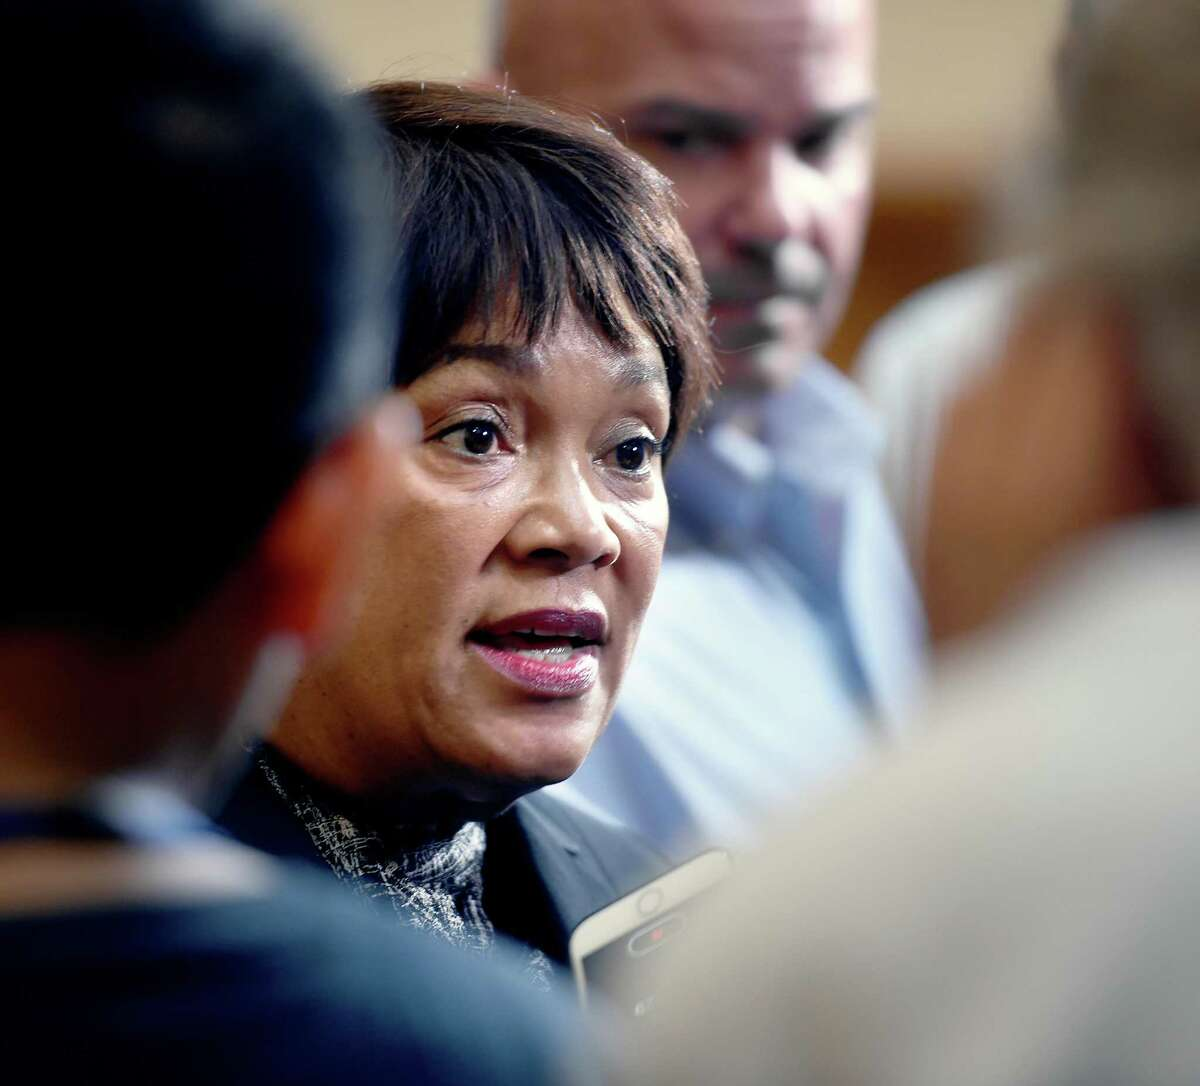 New Haven Mayor Toni Harp (center) speaks with the press after announcing a comprehensive lead mitigation plan at City Hall in New Haven on July 1, 2019